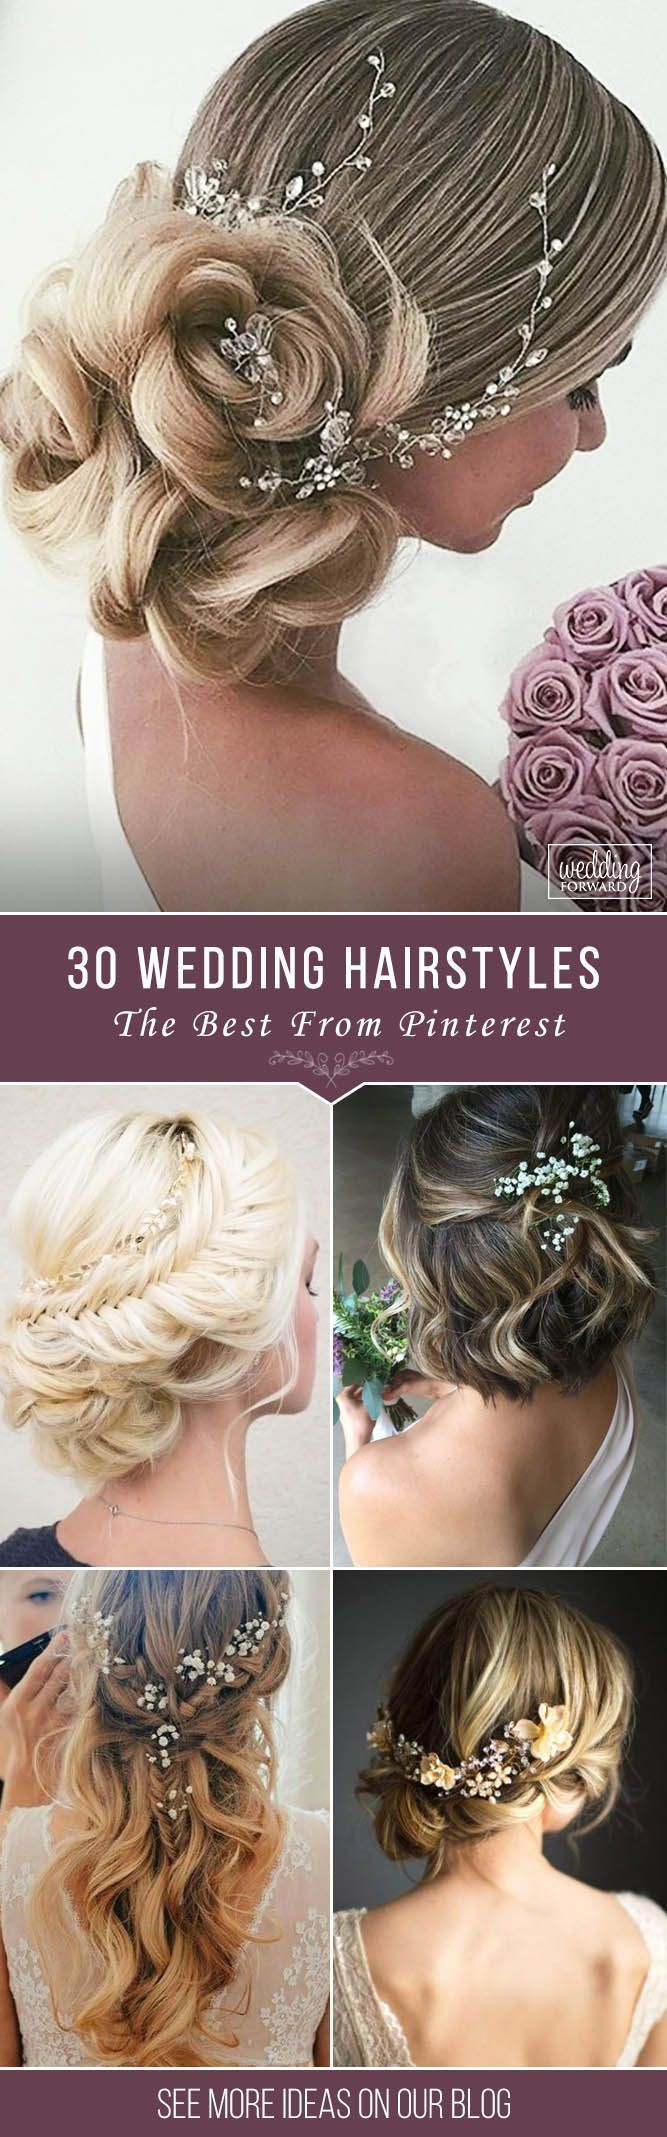 30 Pinterest Wedding Hairstyles For Your Unforgettable Wedding  ❤ If you are interested in elegant and gorgeous wedding hairstyle for your perfect big day, welcome to check out these pinterest wedding hairstyles. See more: http://www.weddingforward.com/pinterest-wedding-hairstyles/  #wedding #hairstyles #HairstylesForWomenIndian